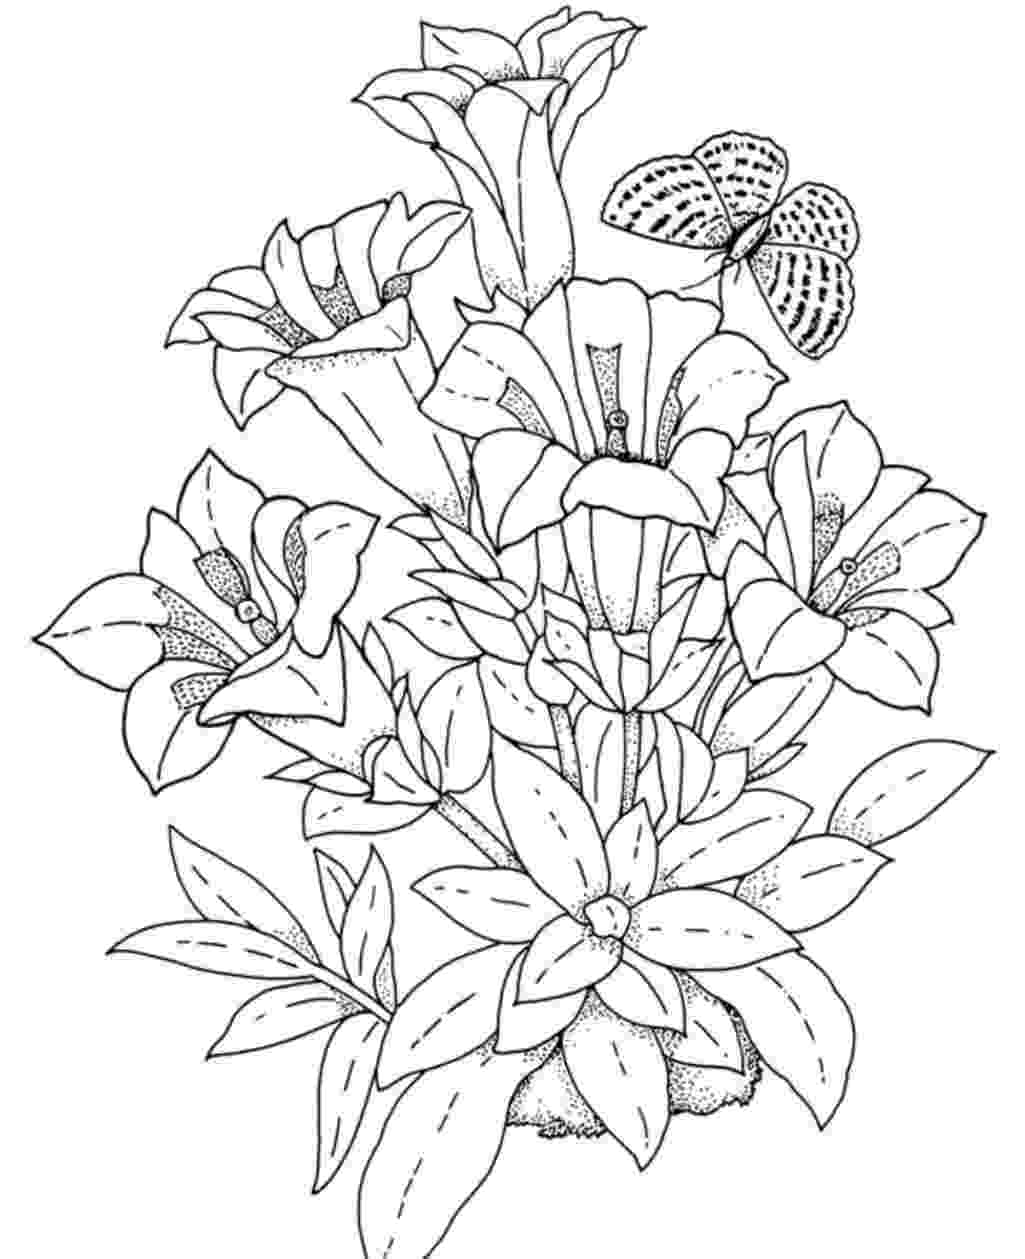 colouring pages for flowers detailed flower coloring pages to download and print for free for colouring flowers pages